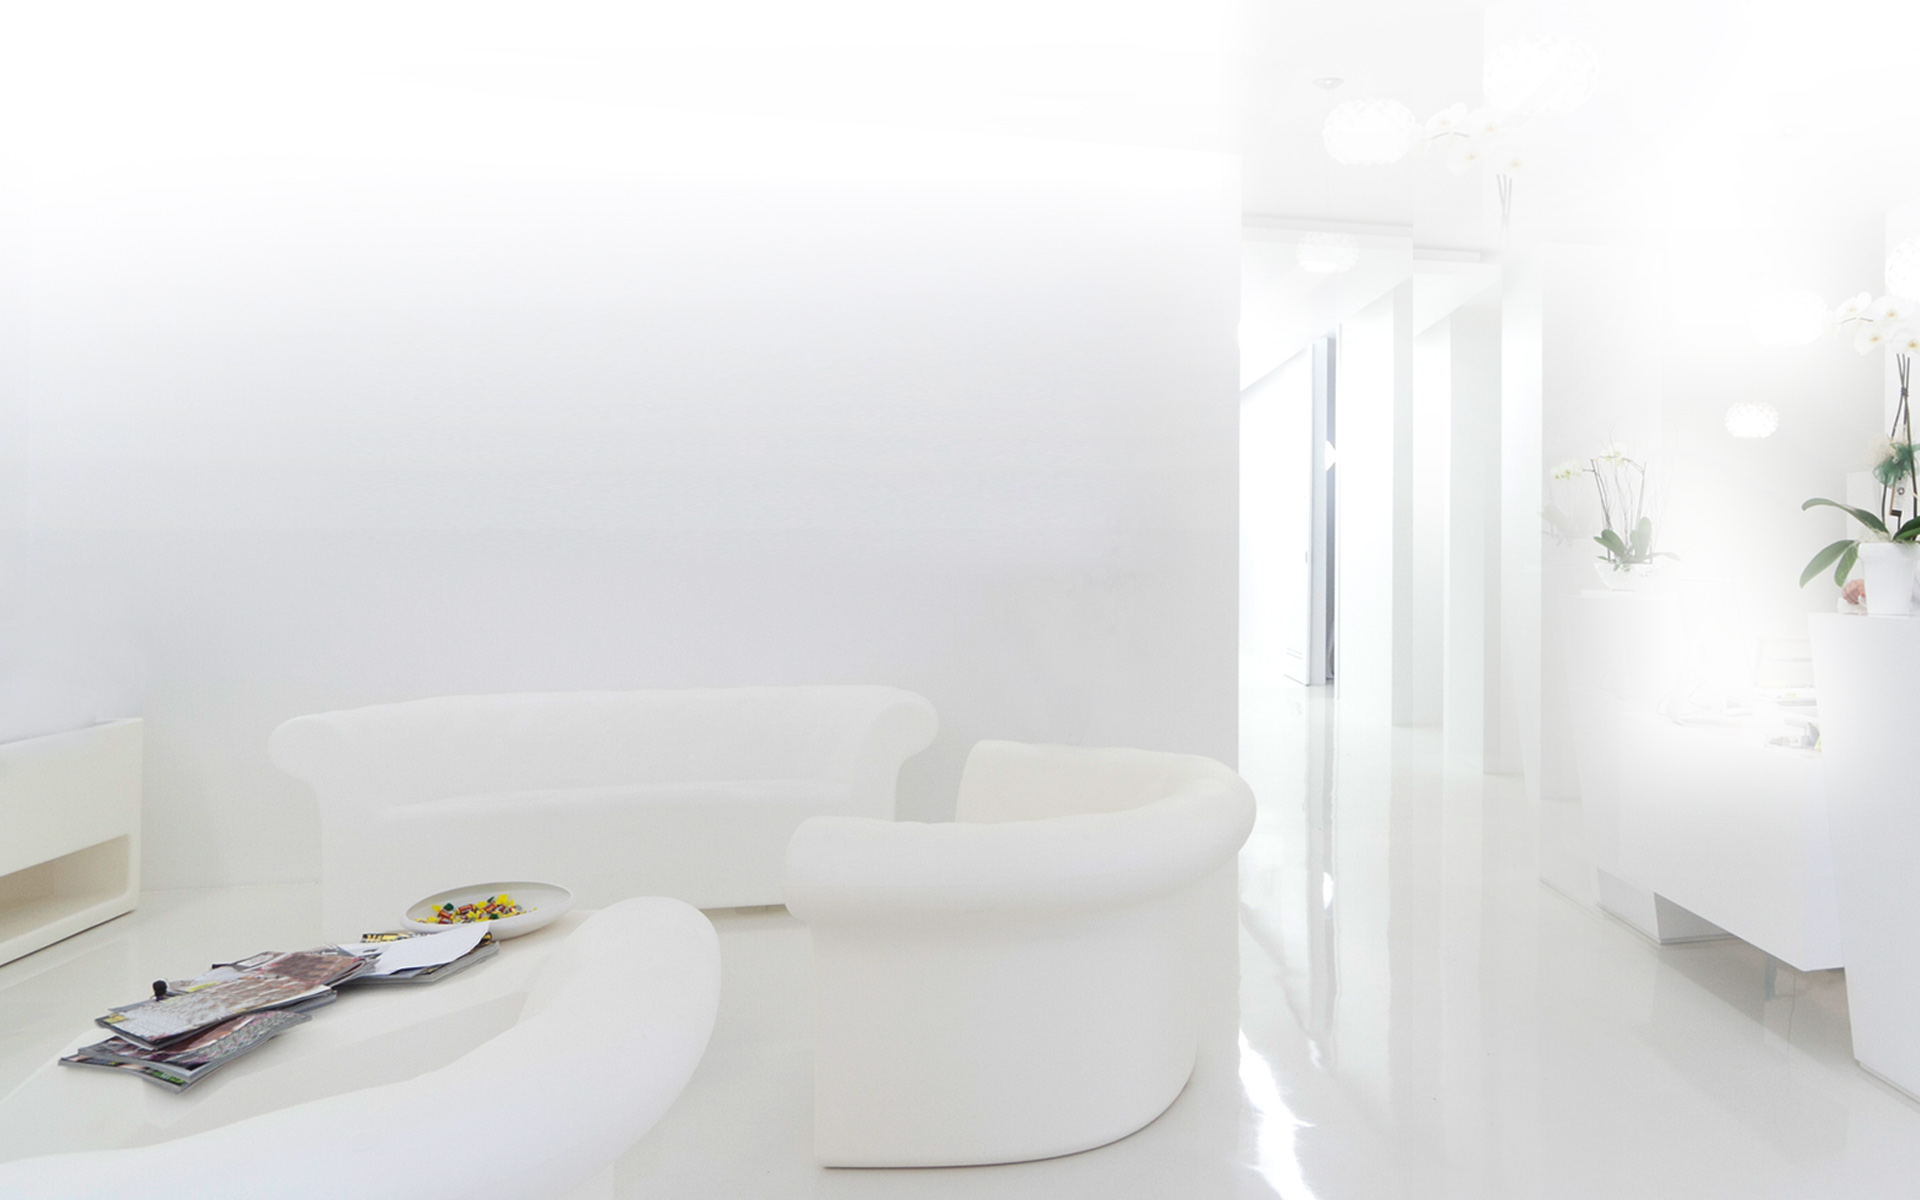 Clean white waiting room image for TV product images